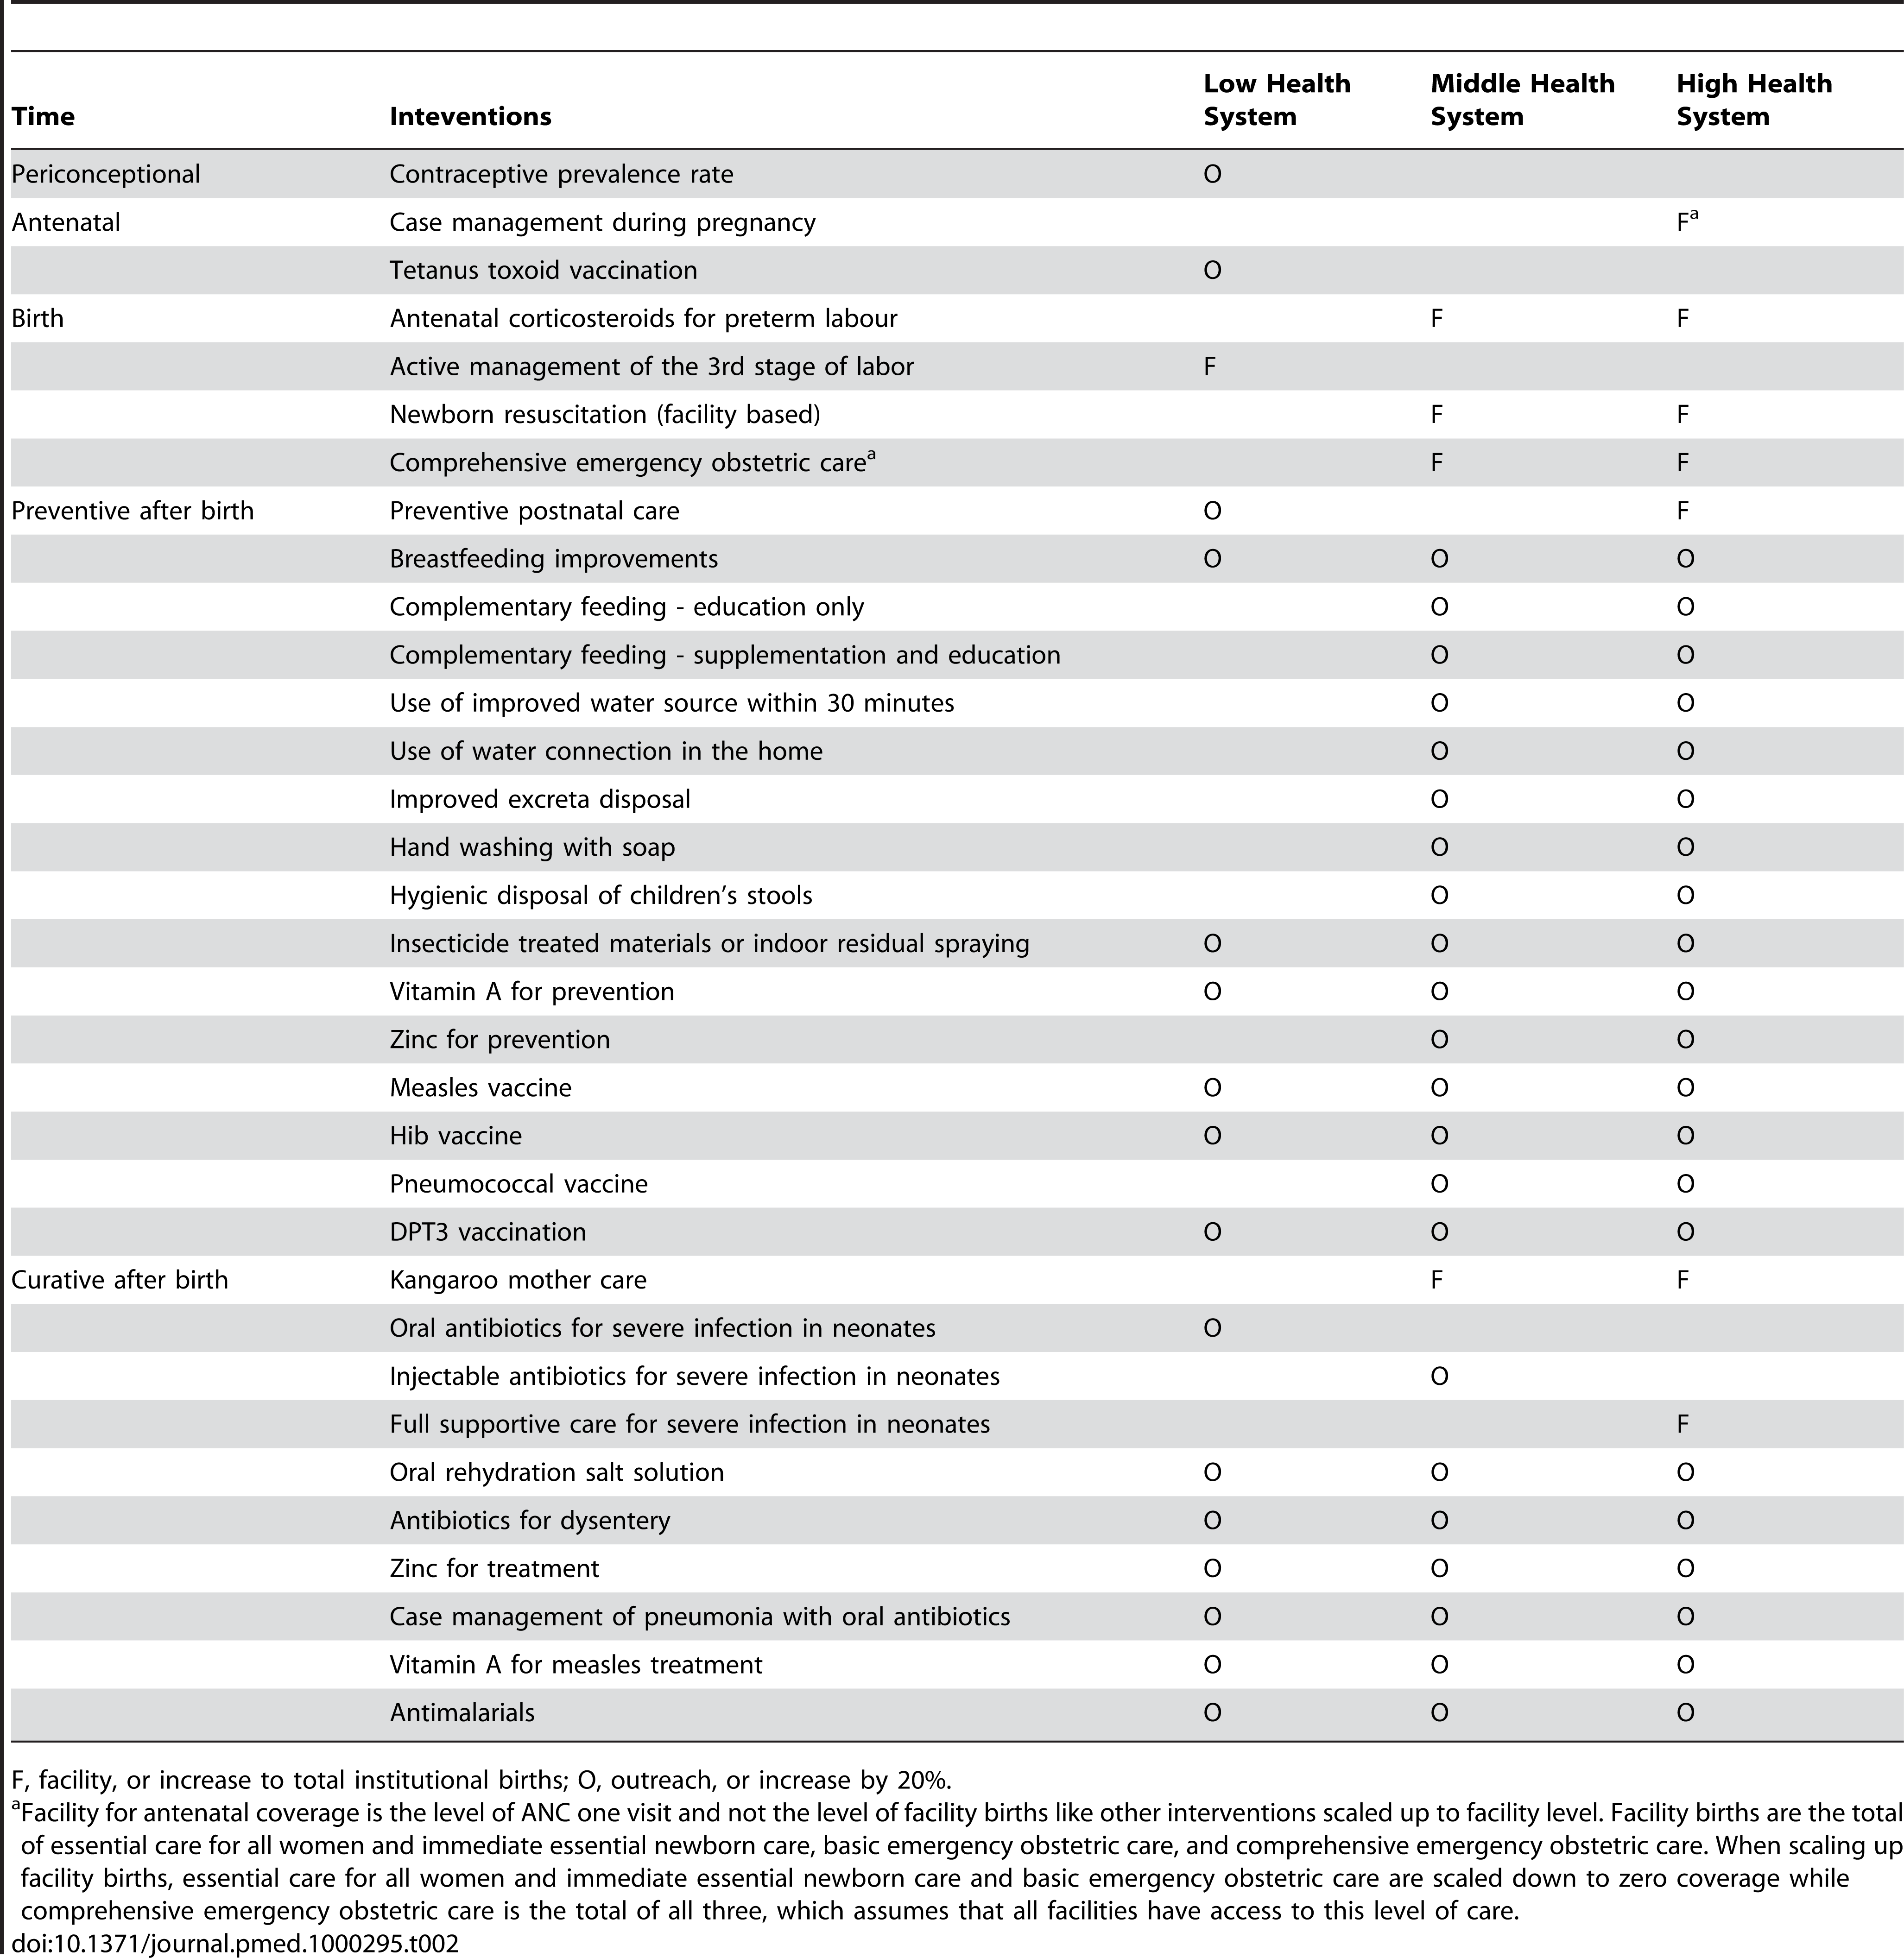 Selected interventions, by health system context and delivery level.